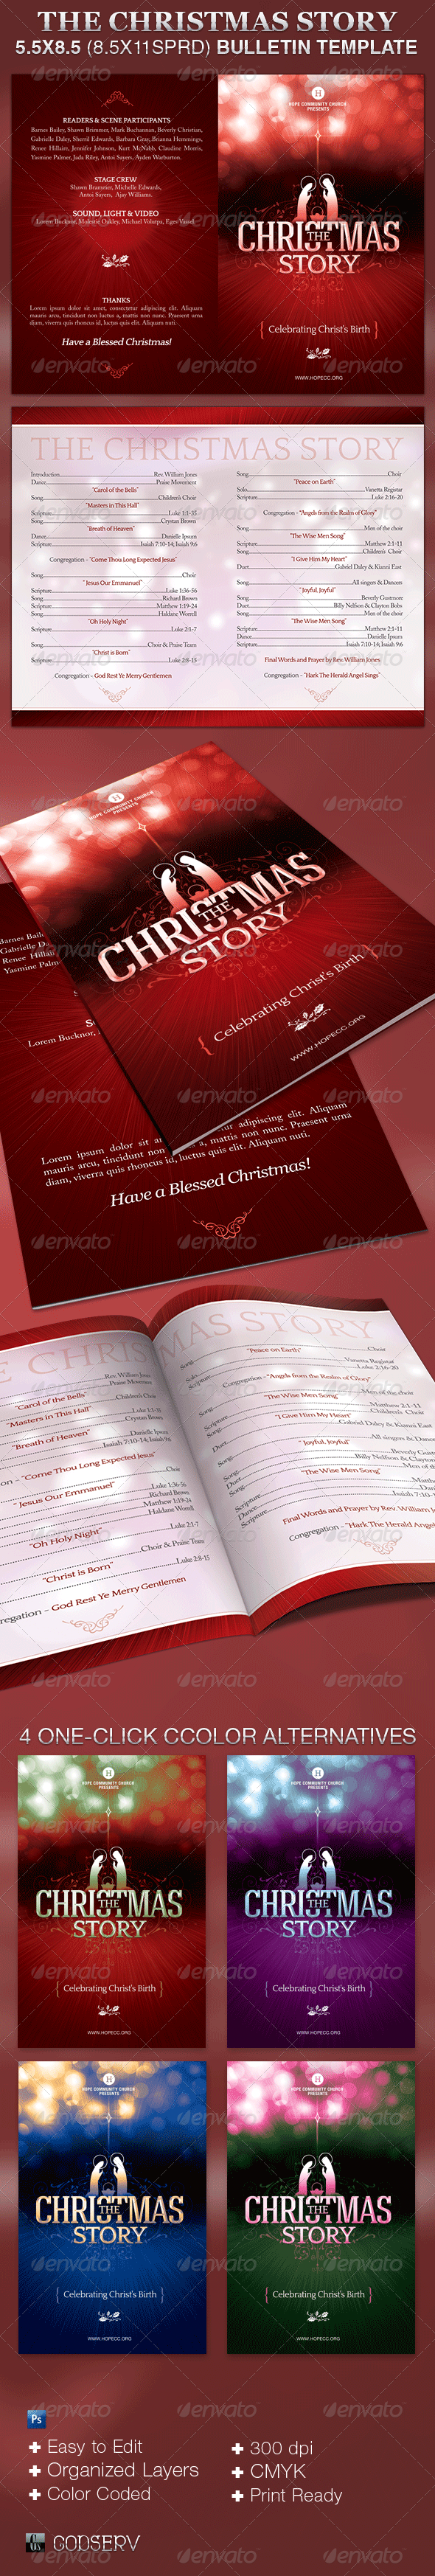 The Christmas Story Church Bulletin Template - Informational Brochures